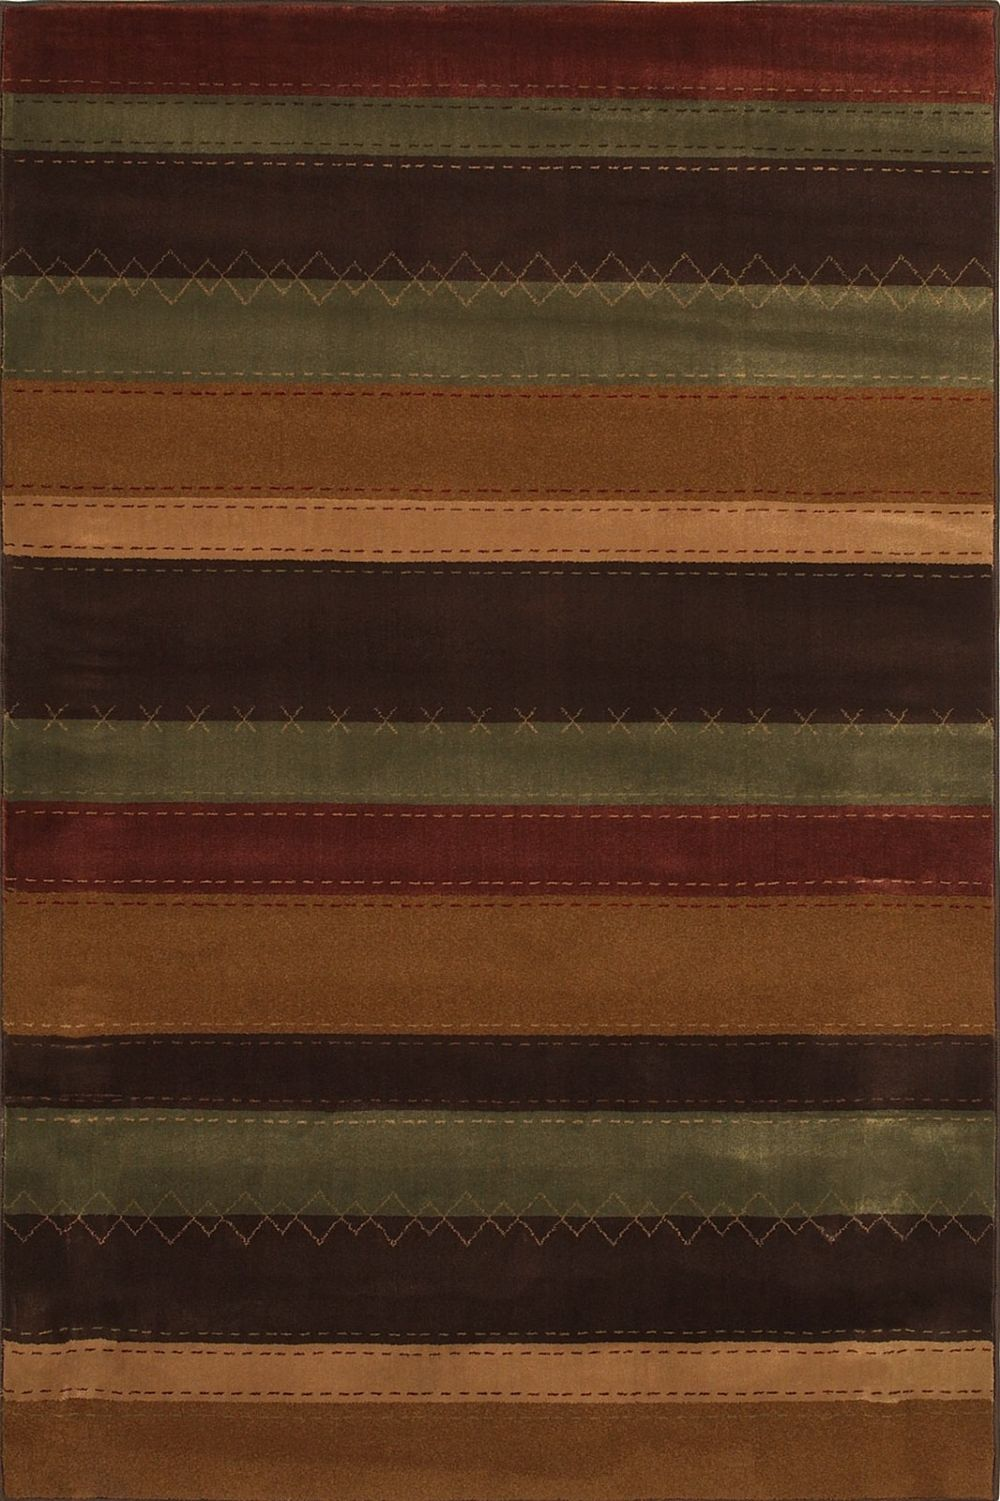 mohawk blackwell solid/striped area rug collection